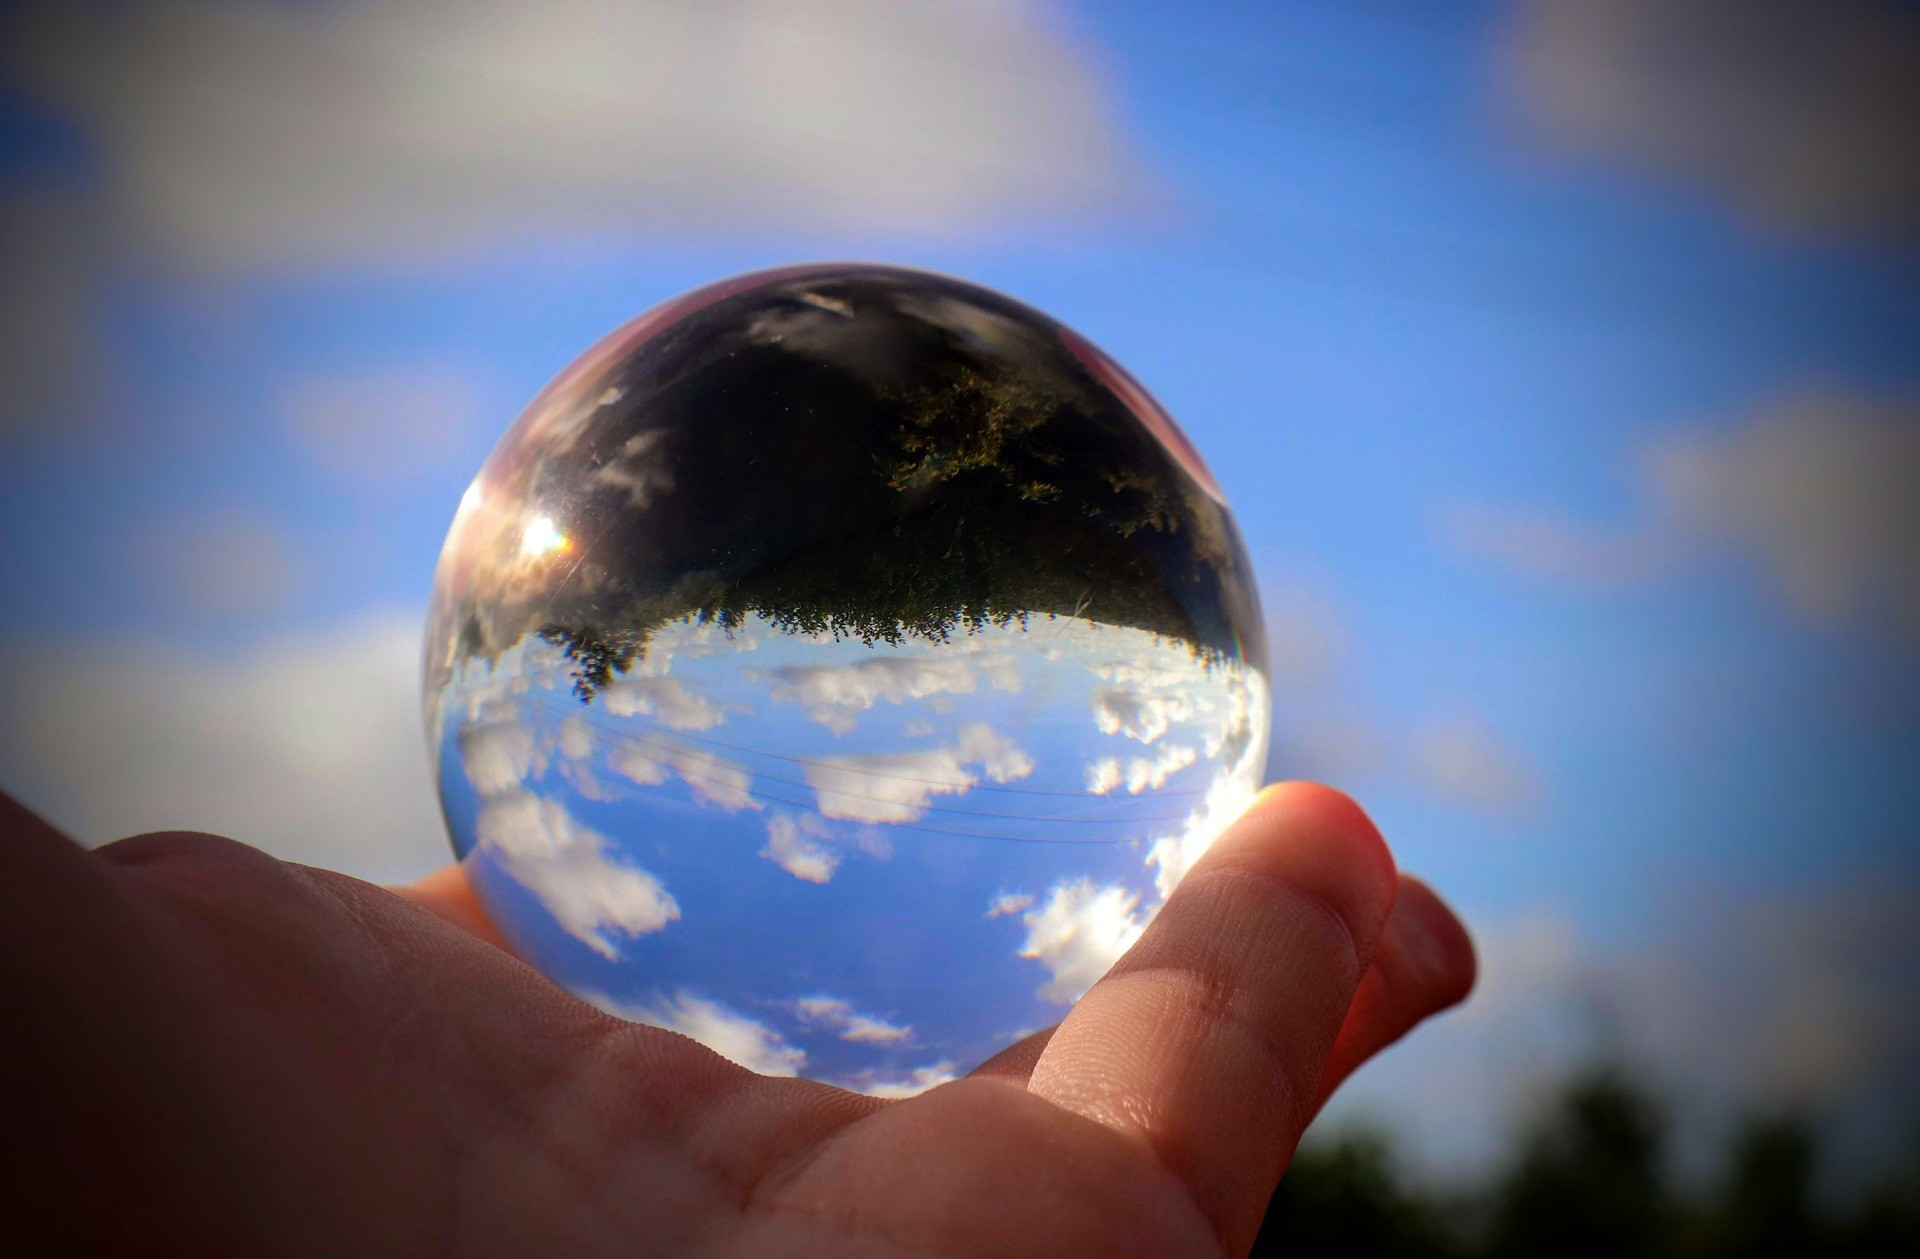 Hand holding glass sphere reflecting sky and earth